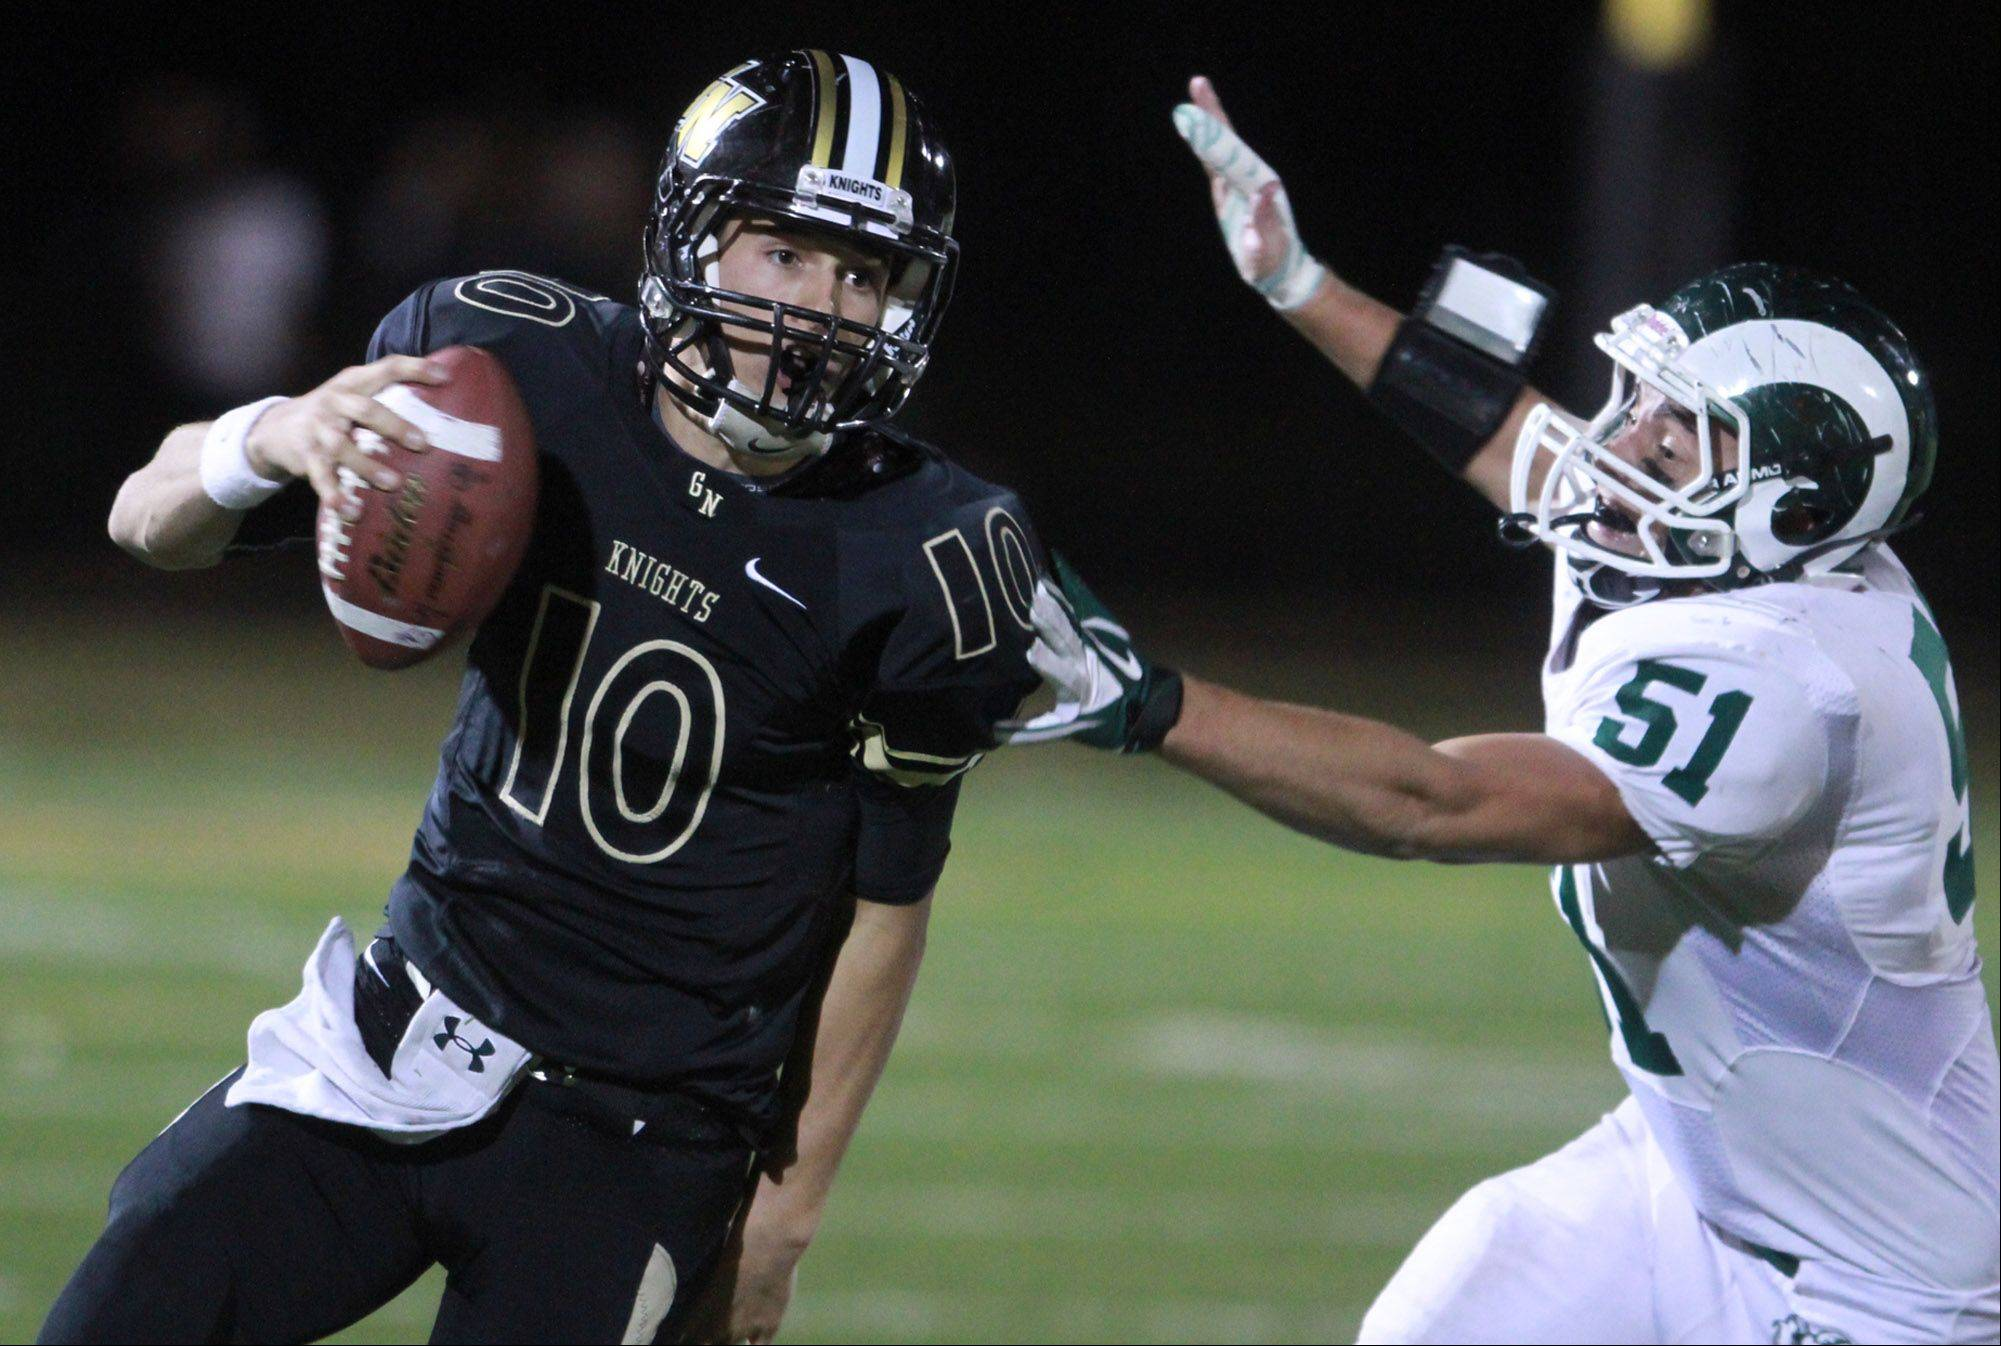 Grayslake North quarterback Anthony Fish slips past Grayslake Central defender Alex McCully Friday.